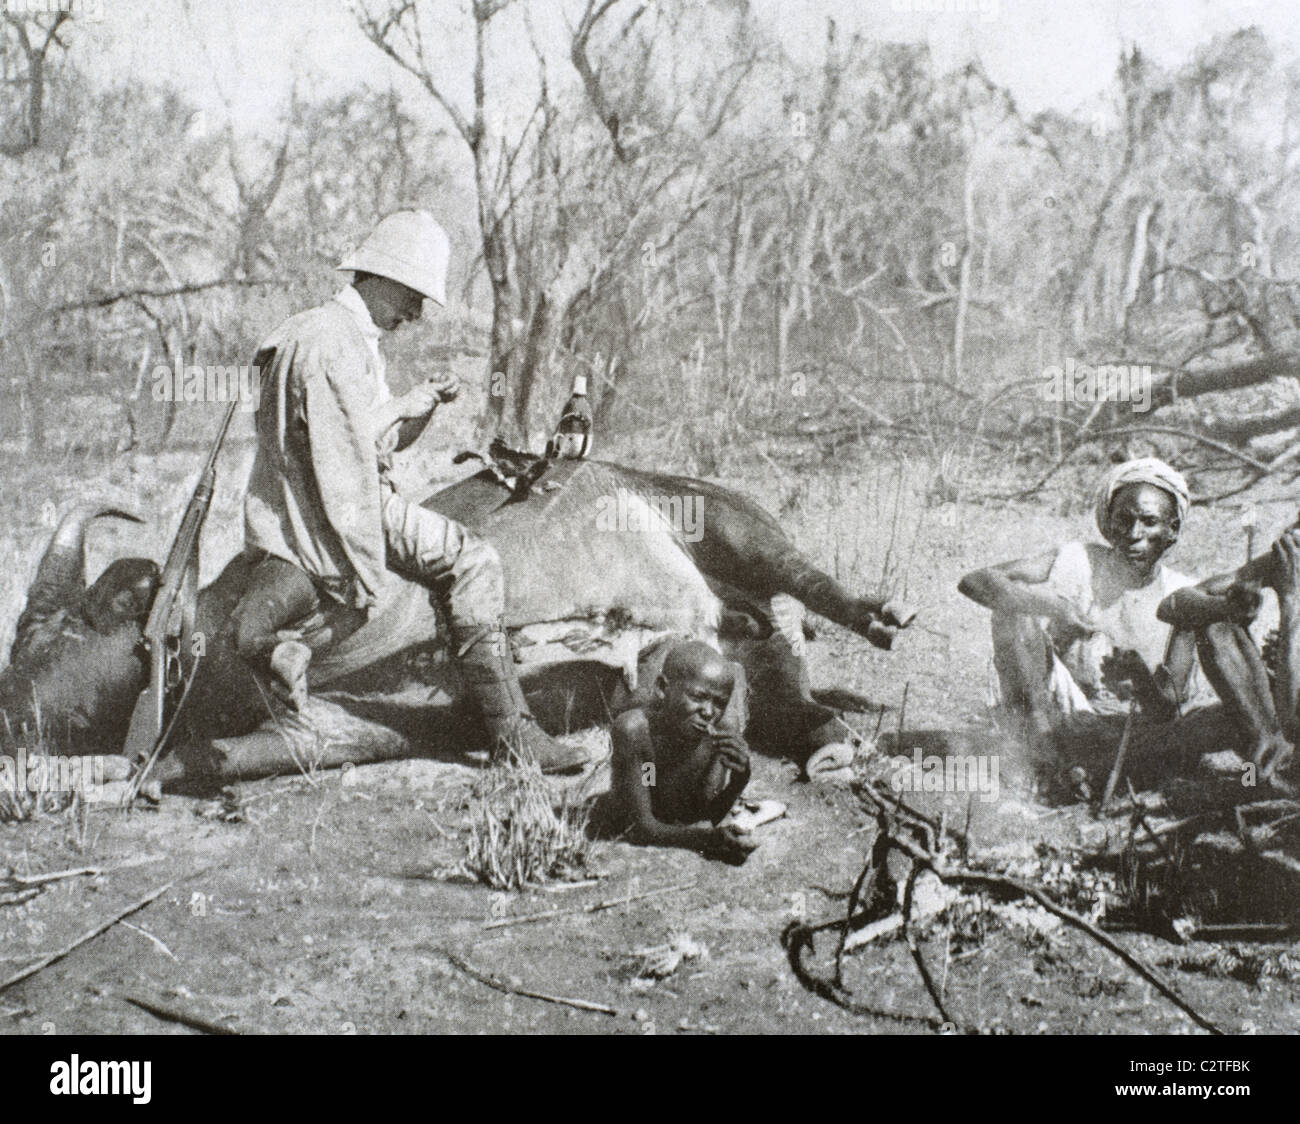 Colonialism. Africa. Eating after the buffalo hunt, 1908. - Stock Image